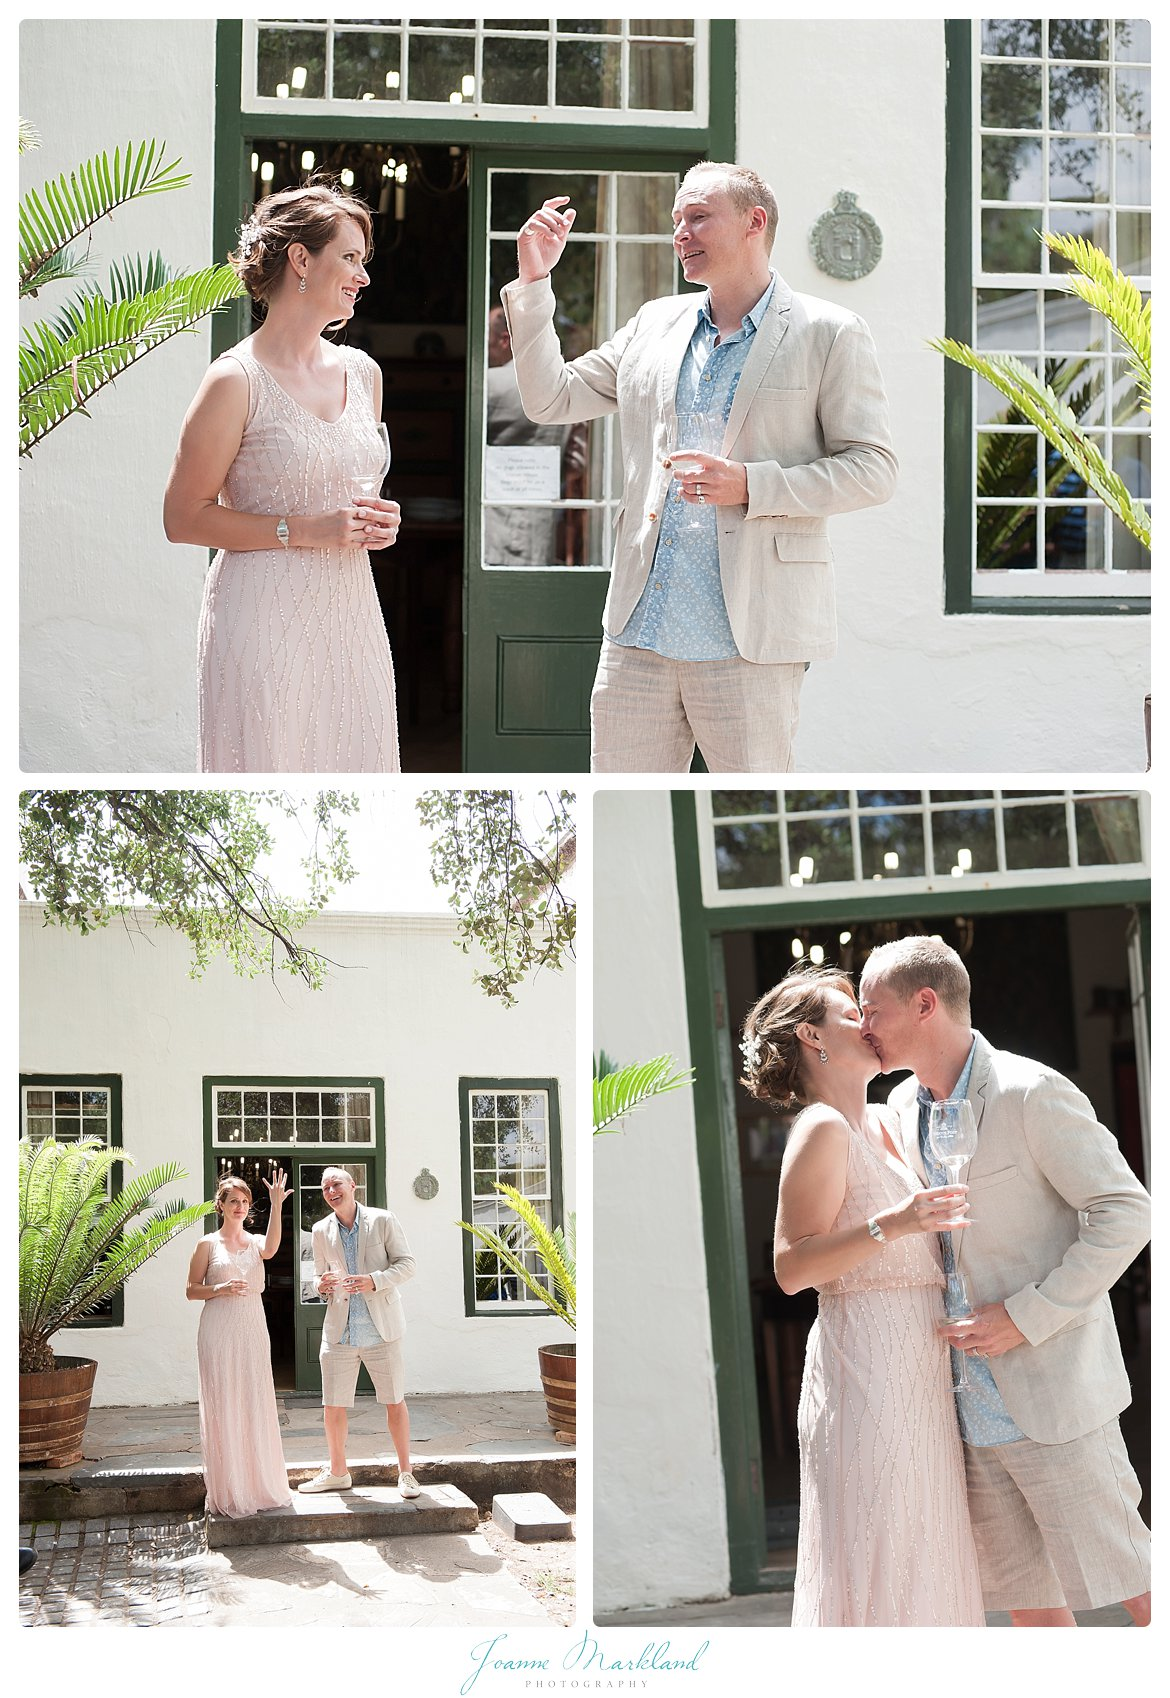 Grootepost-wedding-photography-joanne-markland-031